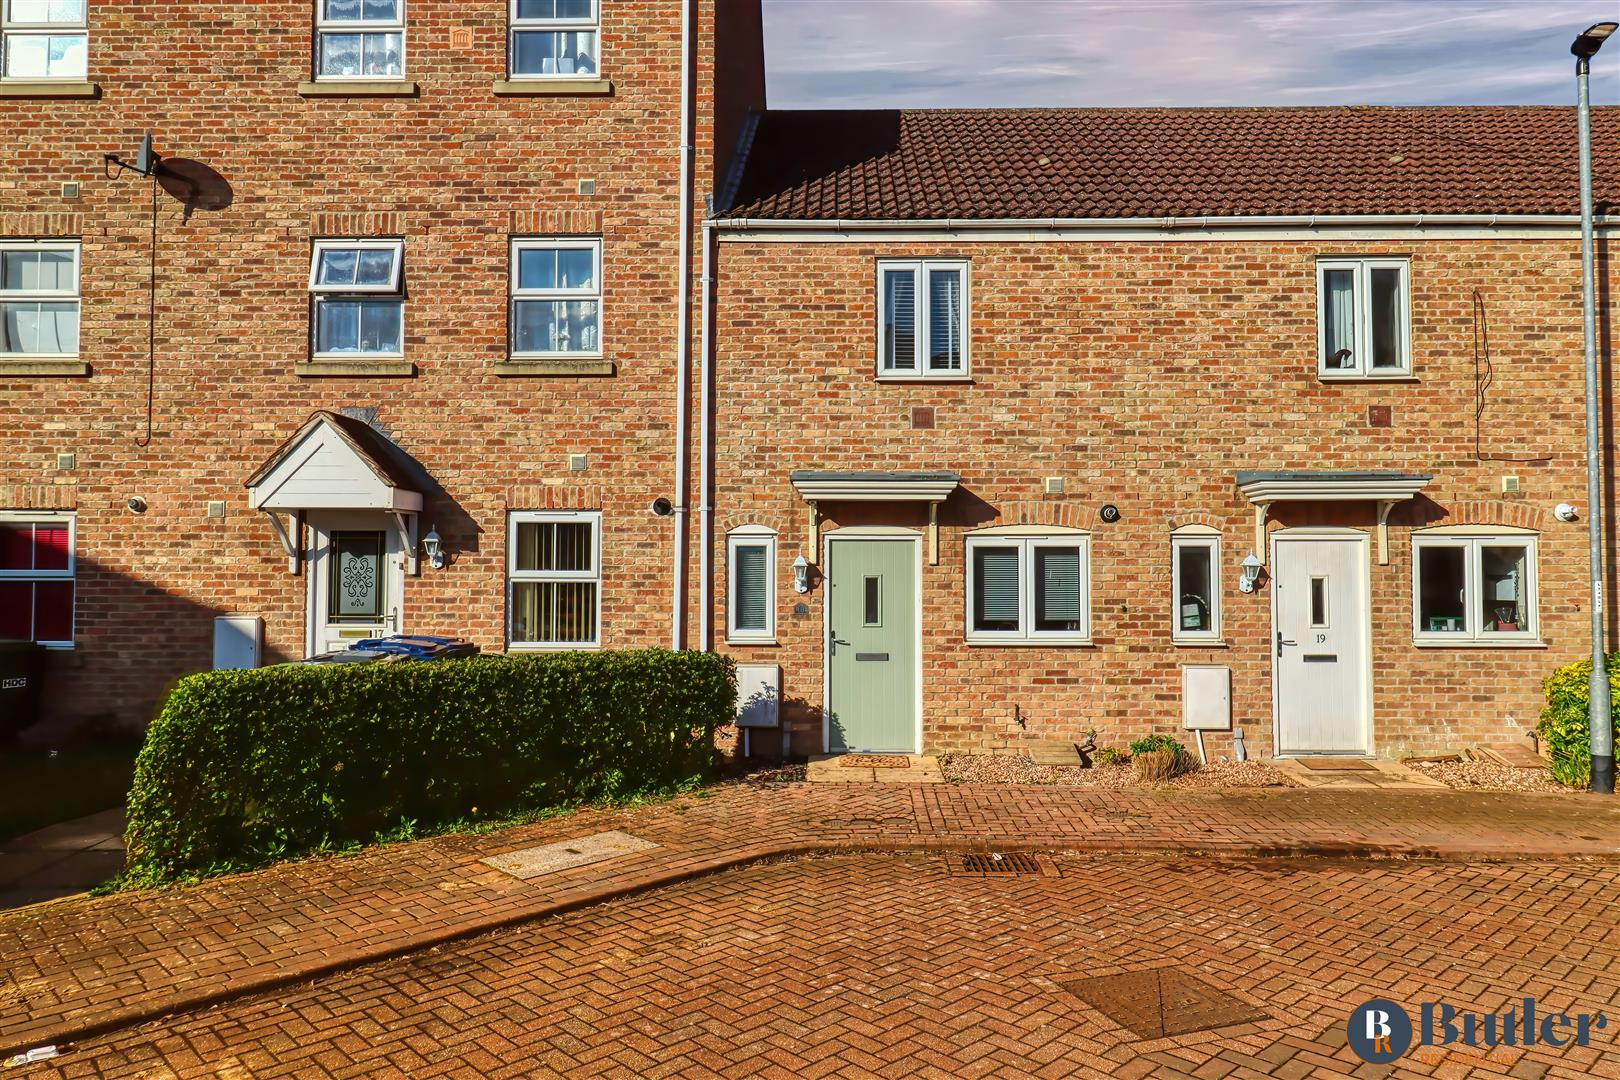 2 bed house for sale in Robertson Way, Huntingdon - Property Image 1